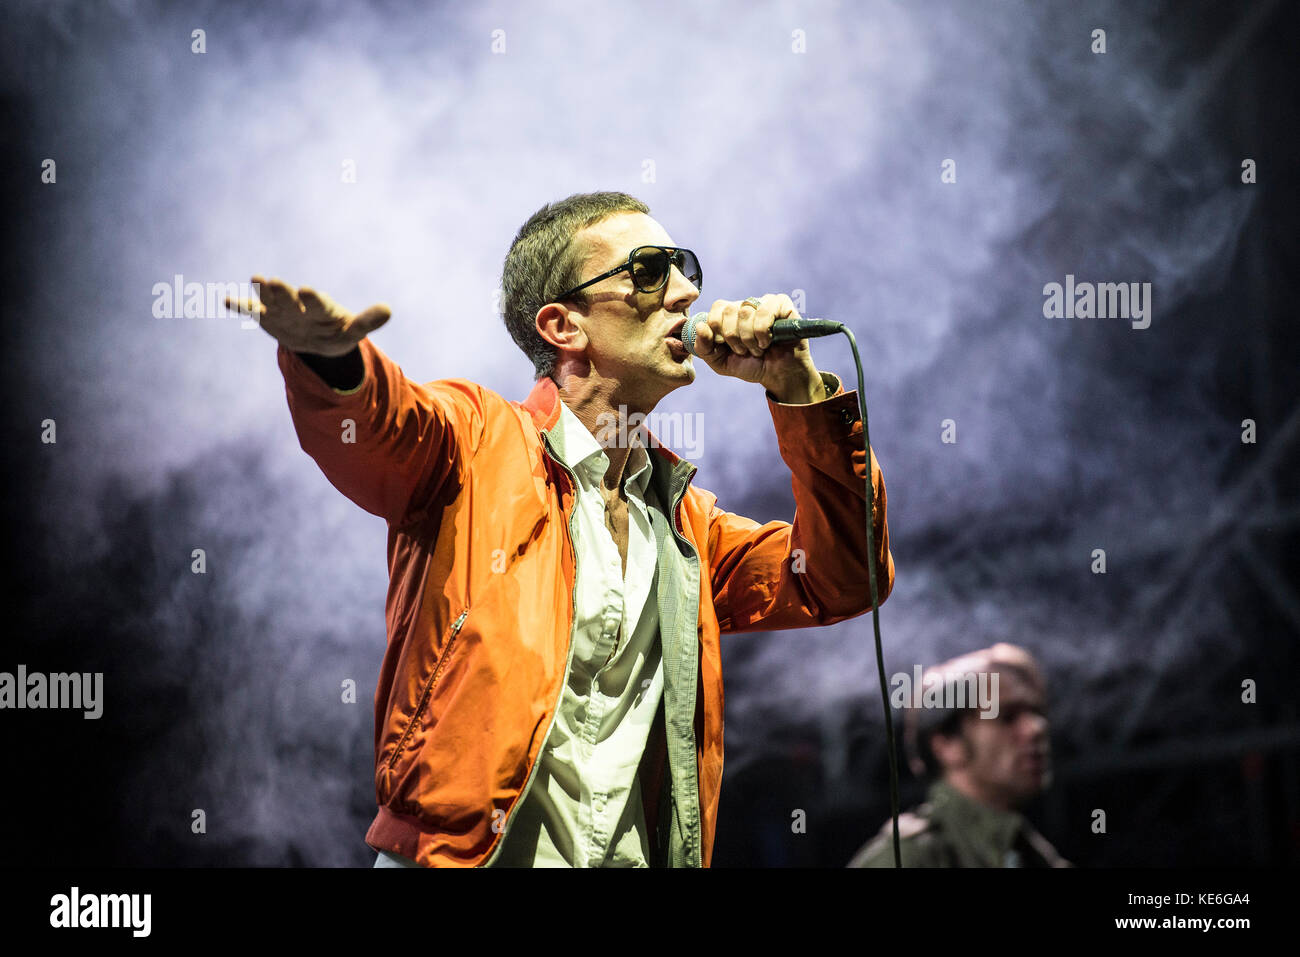 Turin,Italy-August 26, 2017: Richard Ashcroft performs live at the Todays festival on August 26, 2017 in Turin, Stock Photo